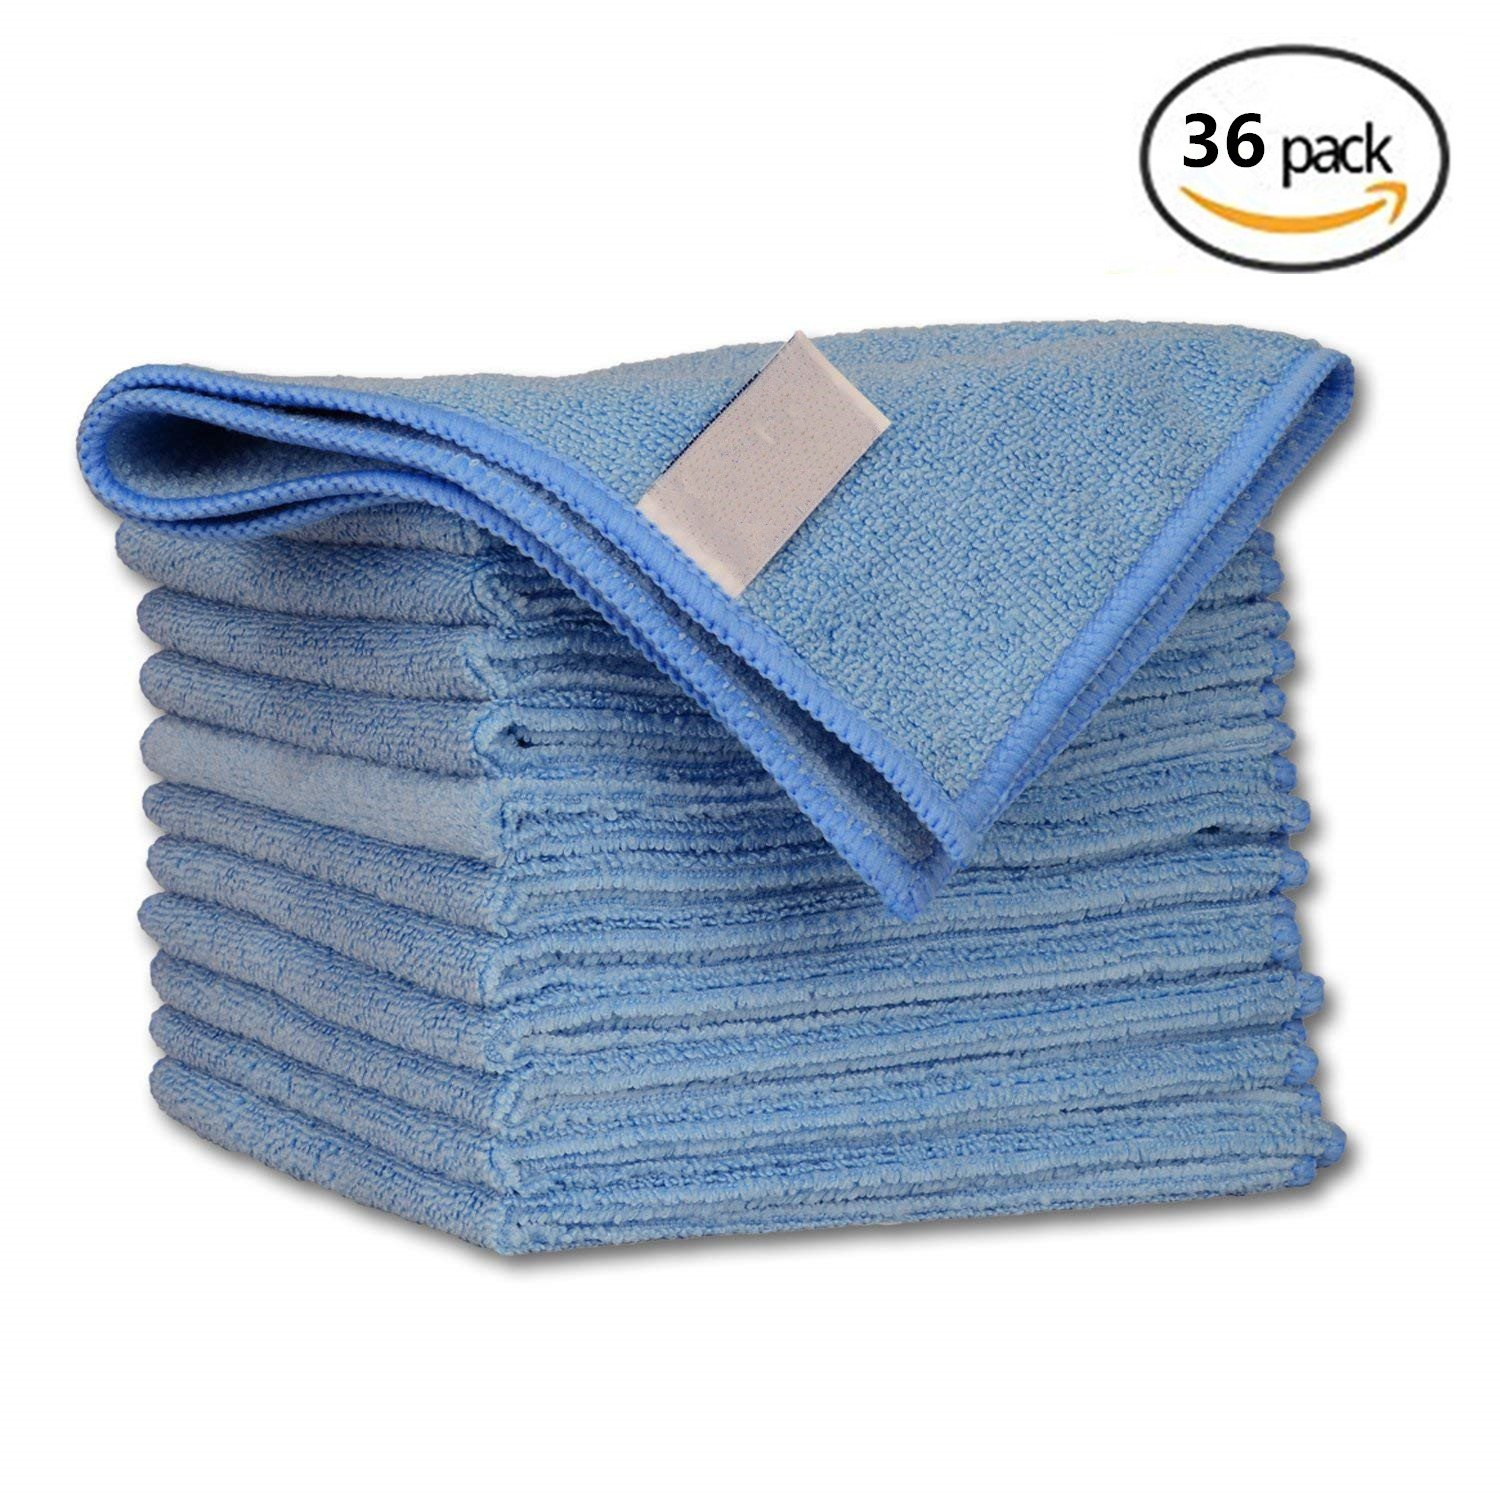 Geekinstyle Pro Multi-Purpose Microfiber Towel – 36 Pack | Premium Cleaning Cloths Rag for Kitchen Furniture Car | Clean, Dust, Polish, Absorb | Small 12''x12'' (Blue) by Geekinstyle